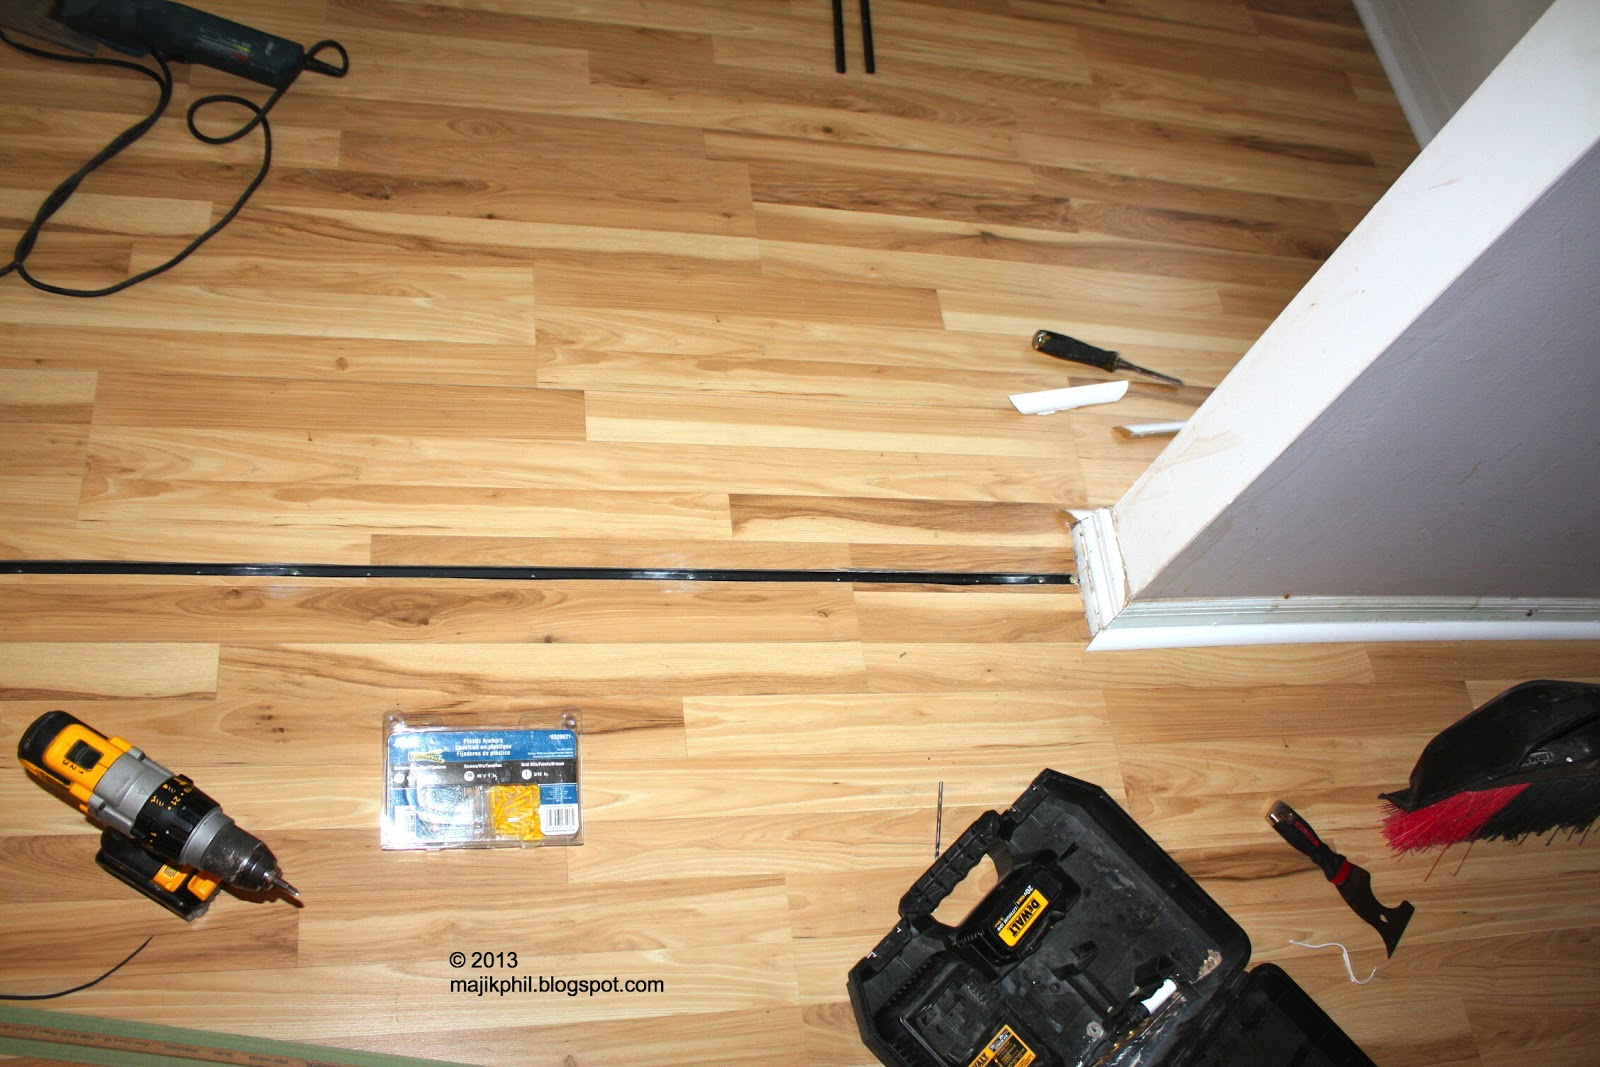 Laminate Floor Repair scratched oak flooring daniel friedman Above And Below Once The Expansion Slot Is Created A Track Is Installed Into The Subfloor The Subfloor Is Concrete So A Concrete Drill Is Used To Make